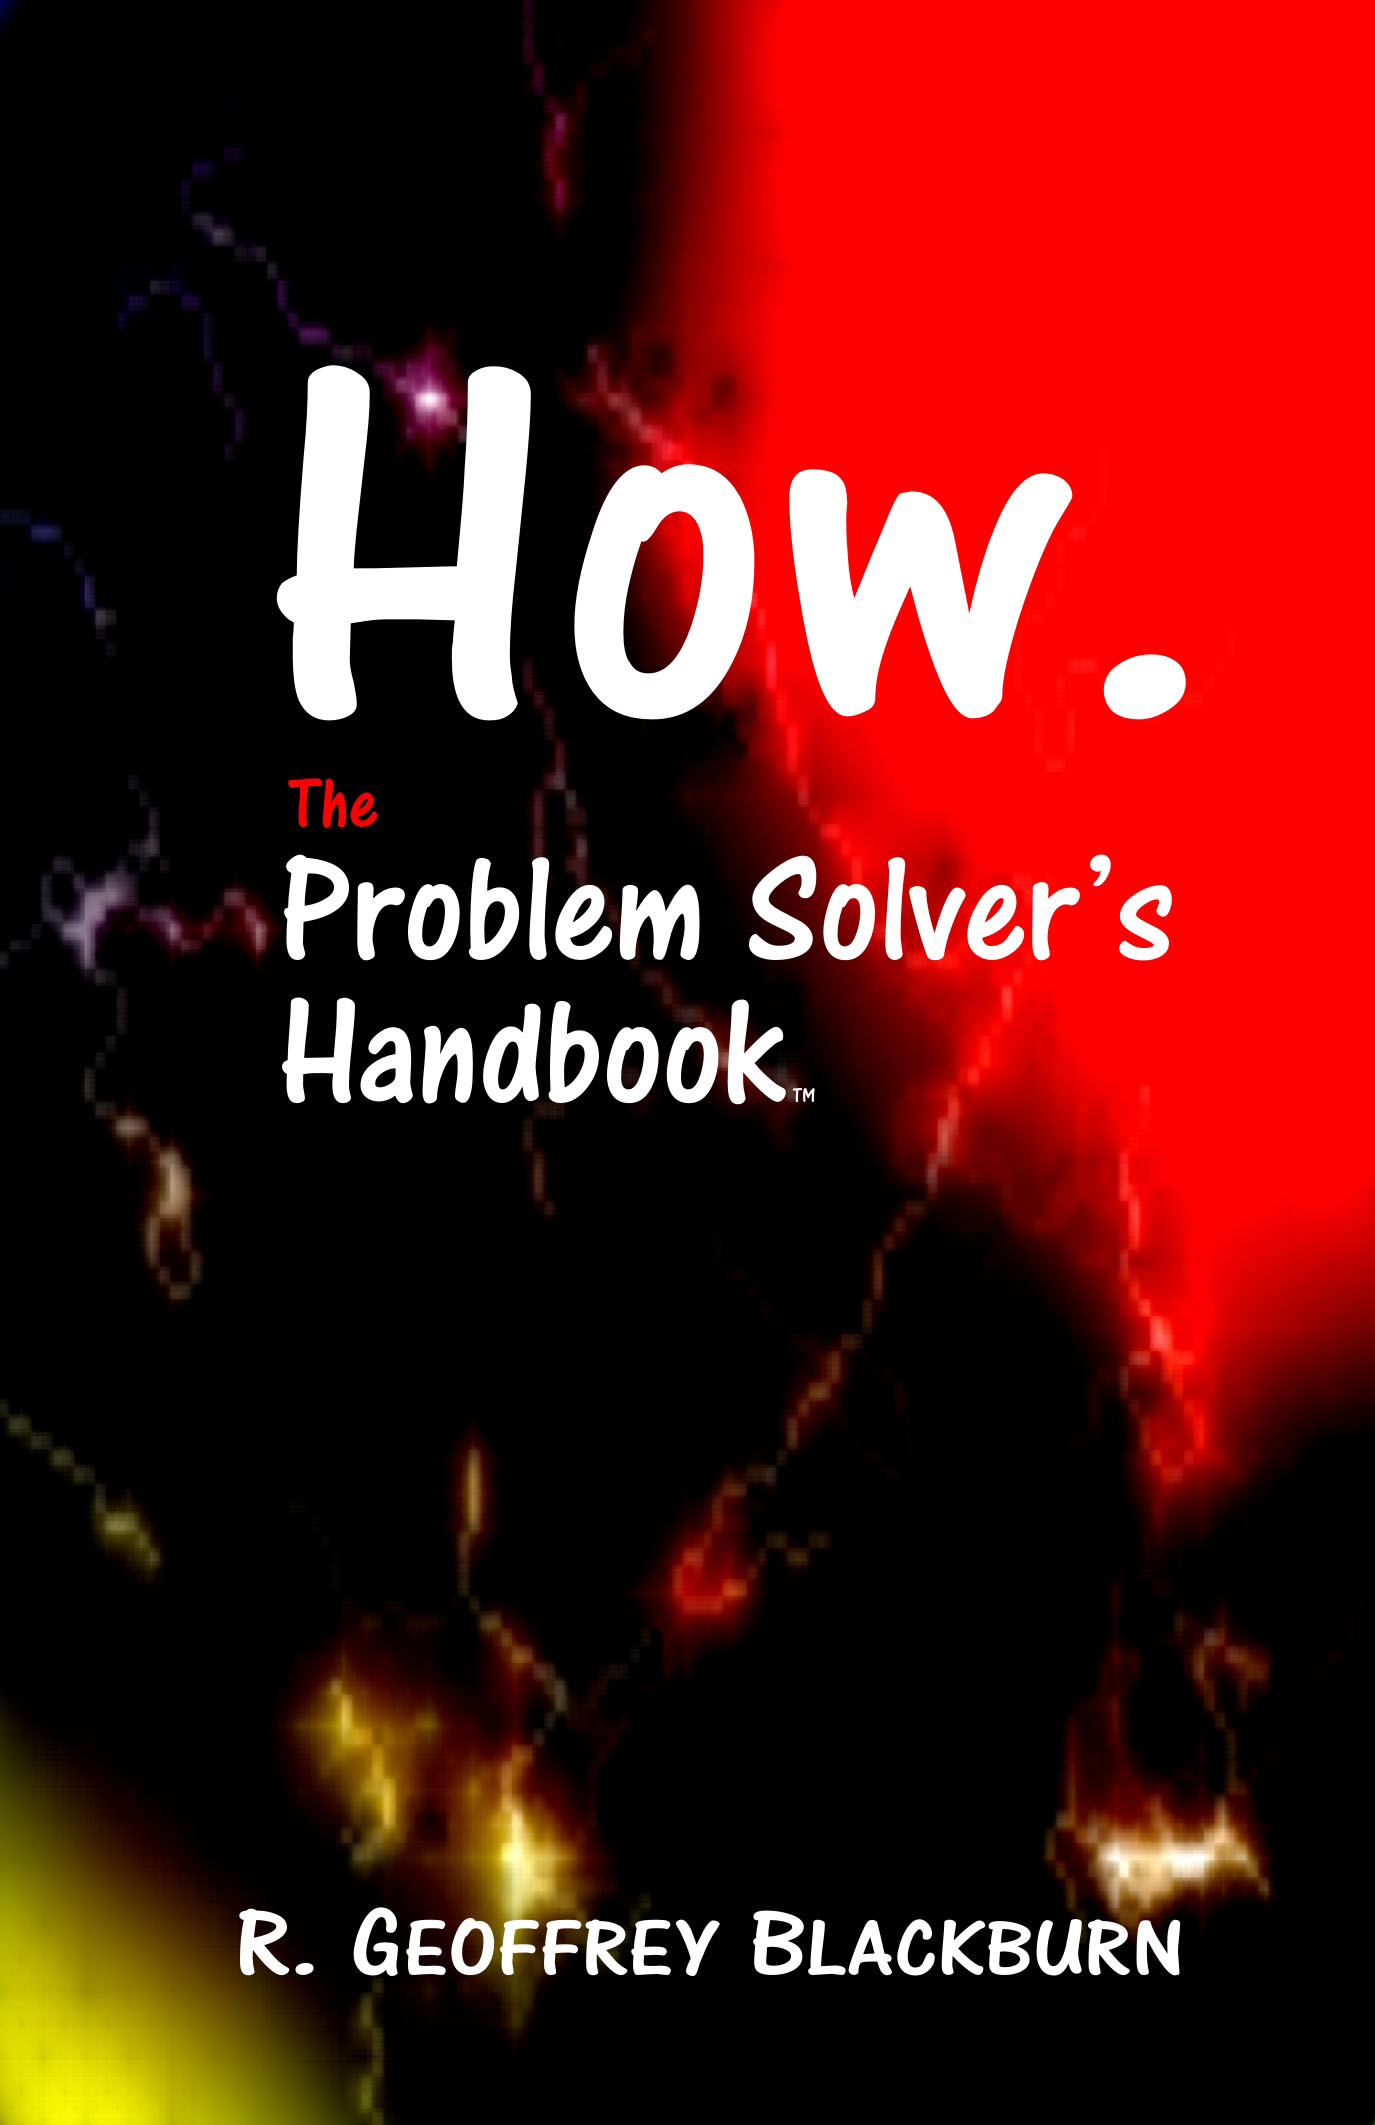 How. The Problem Solver's Handbook